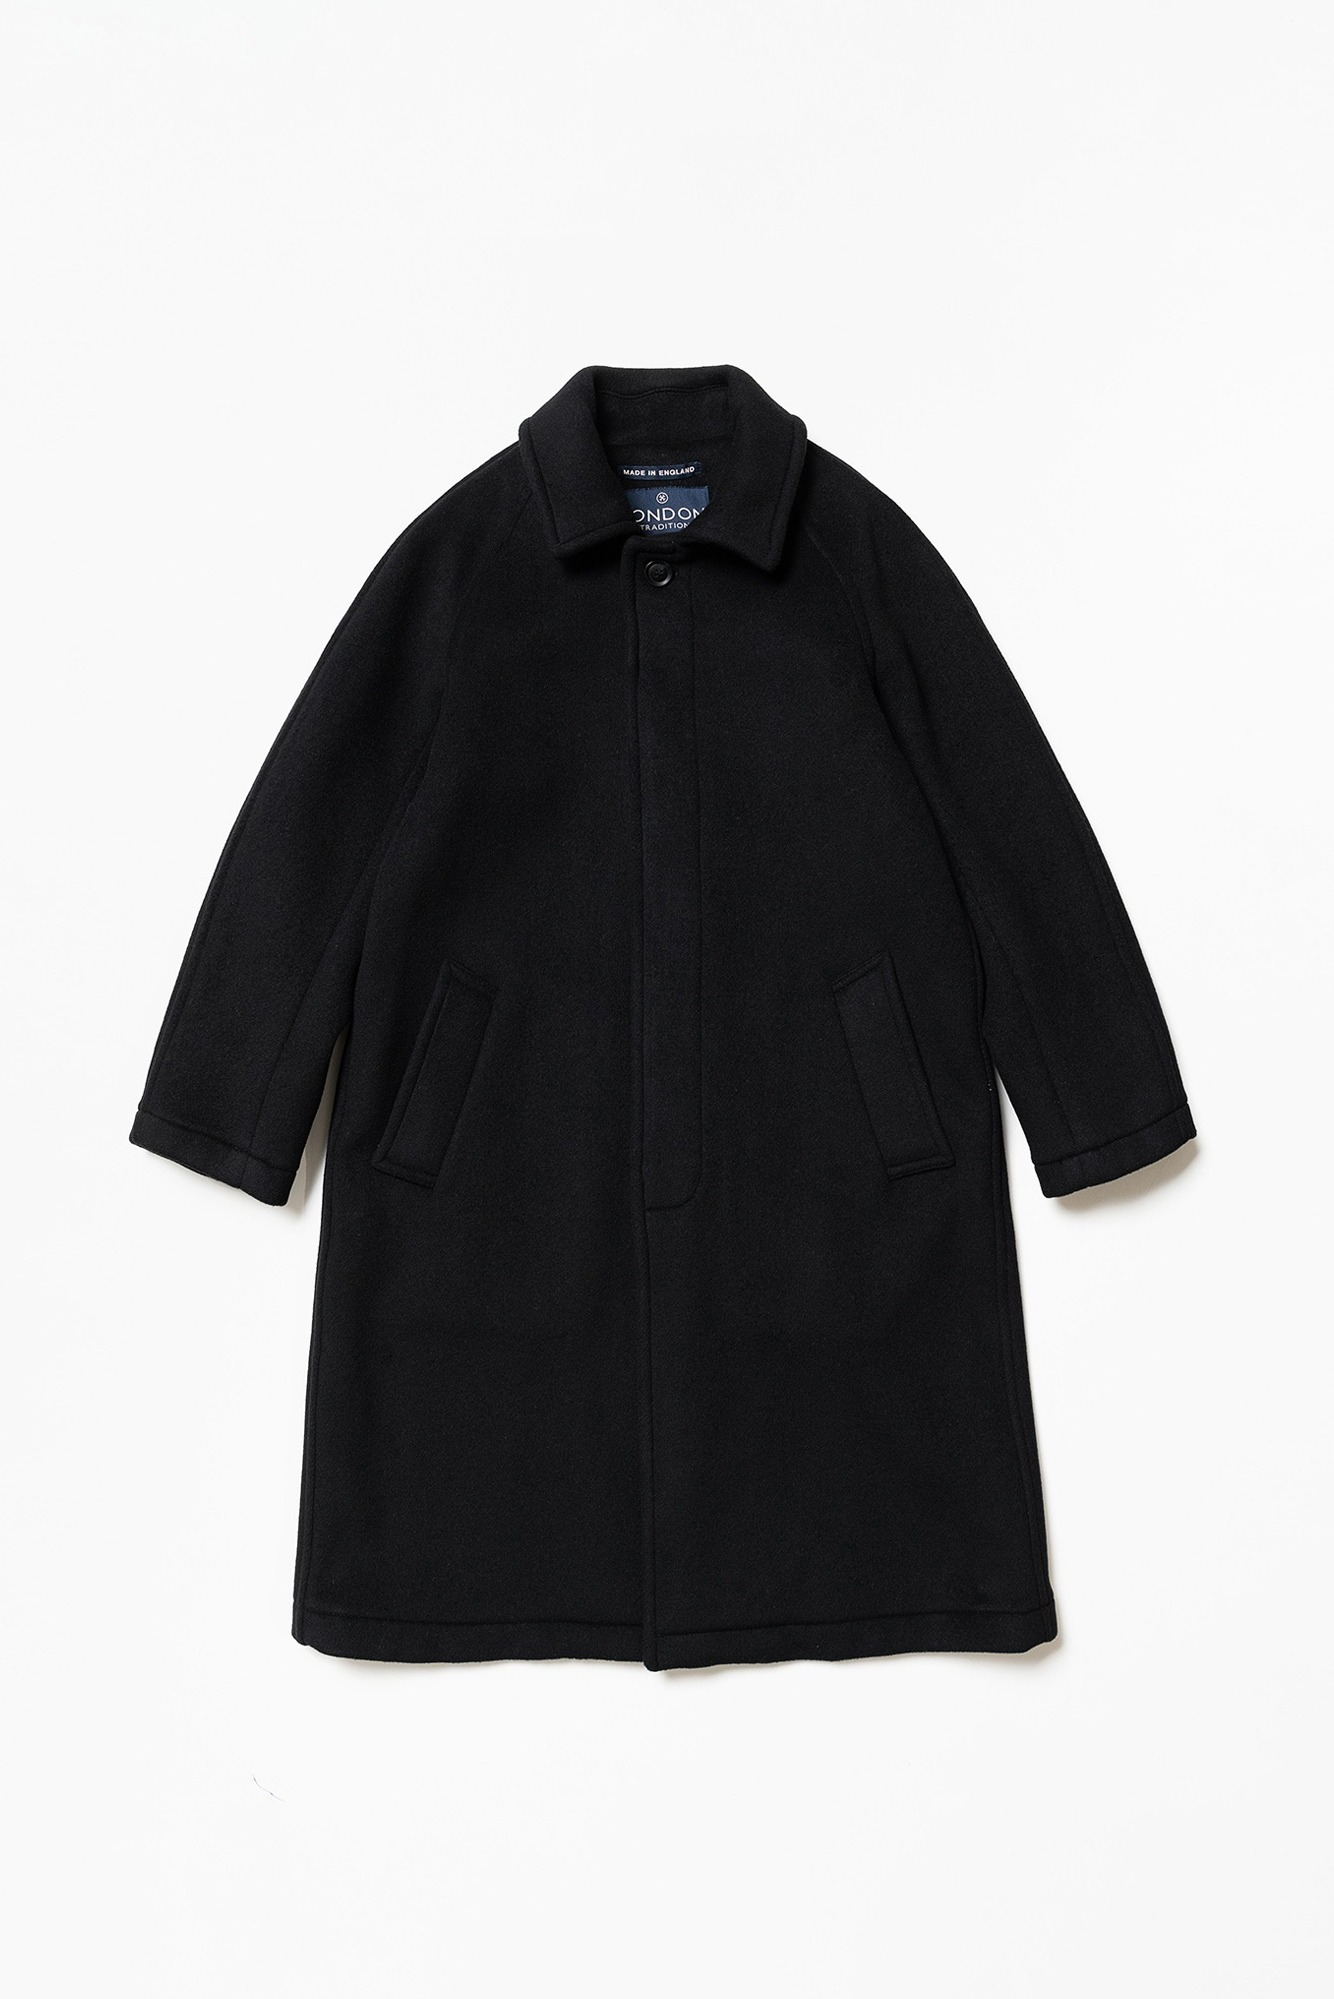 "LONDON TRADITION Mens R06 Fly Front Coat ""Black BW"""